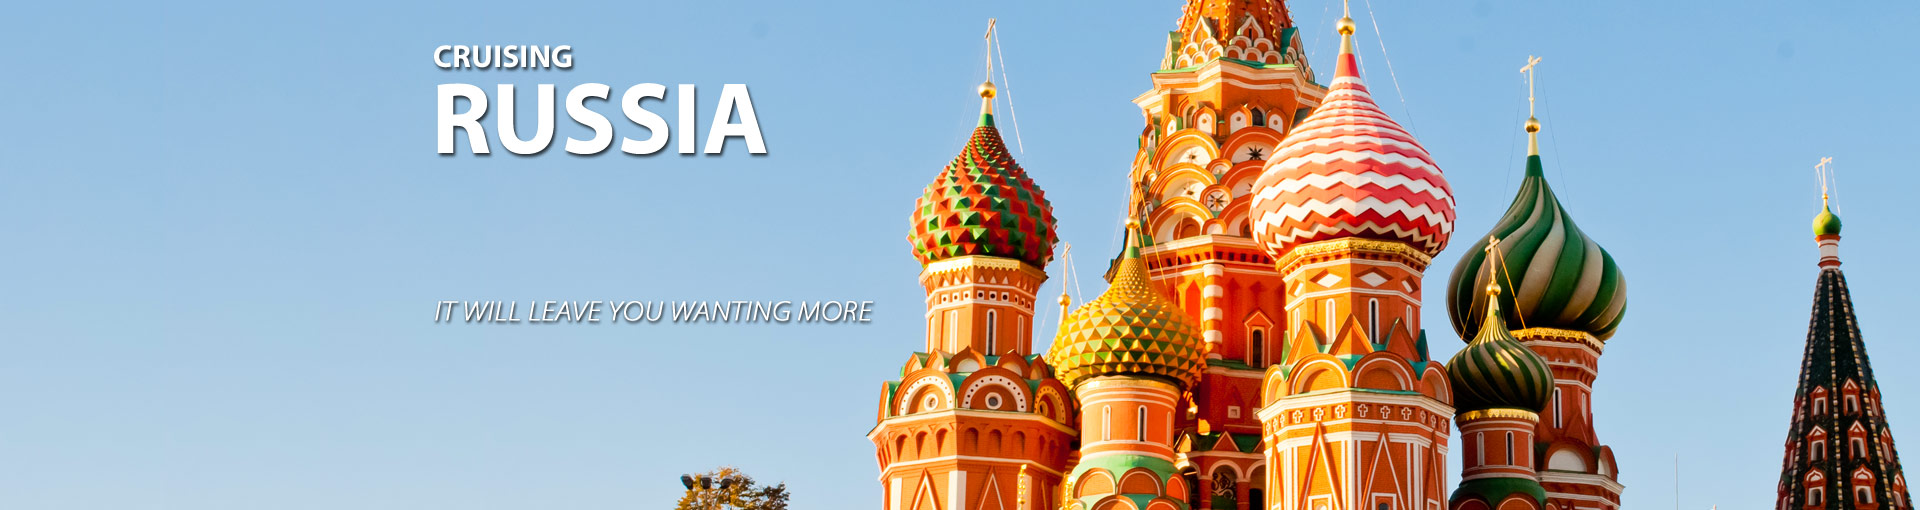 Explore Russian culture on a cruise to Russia